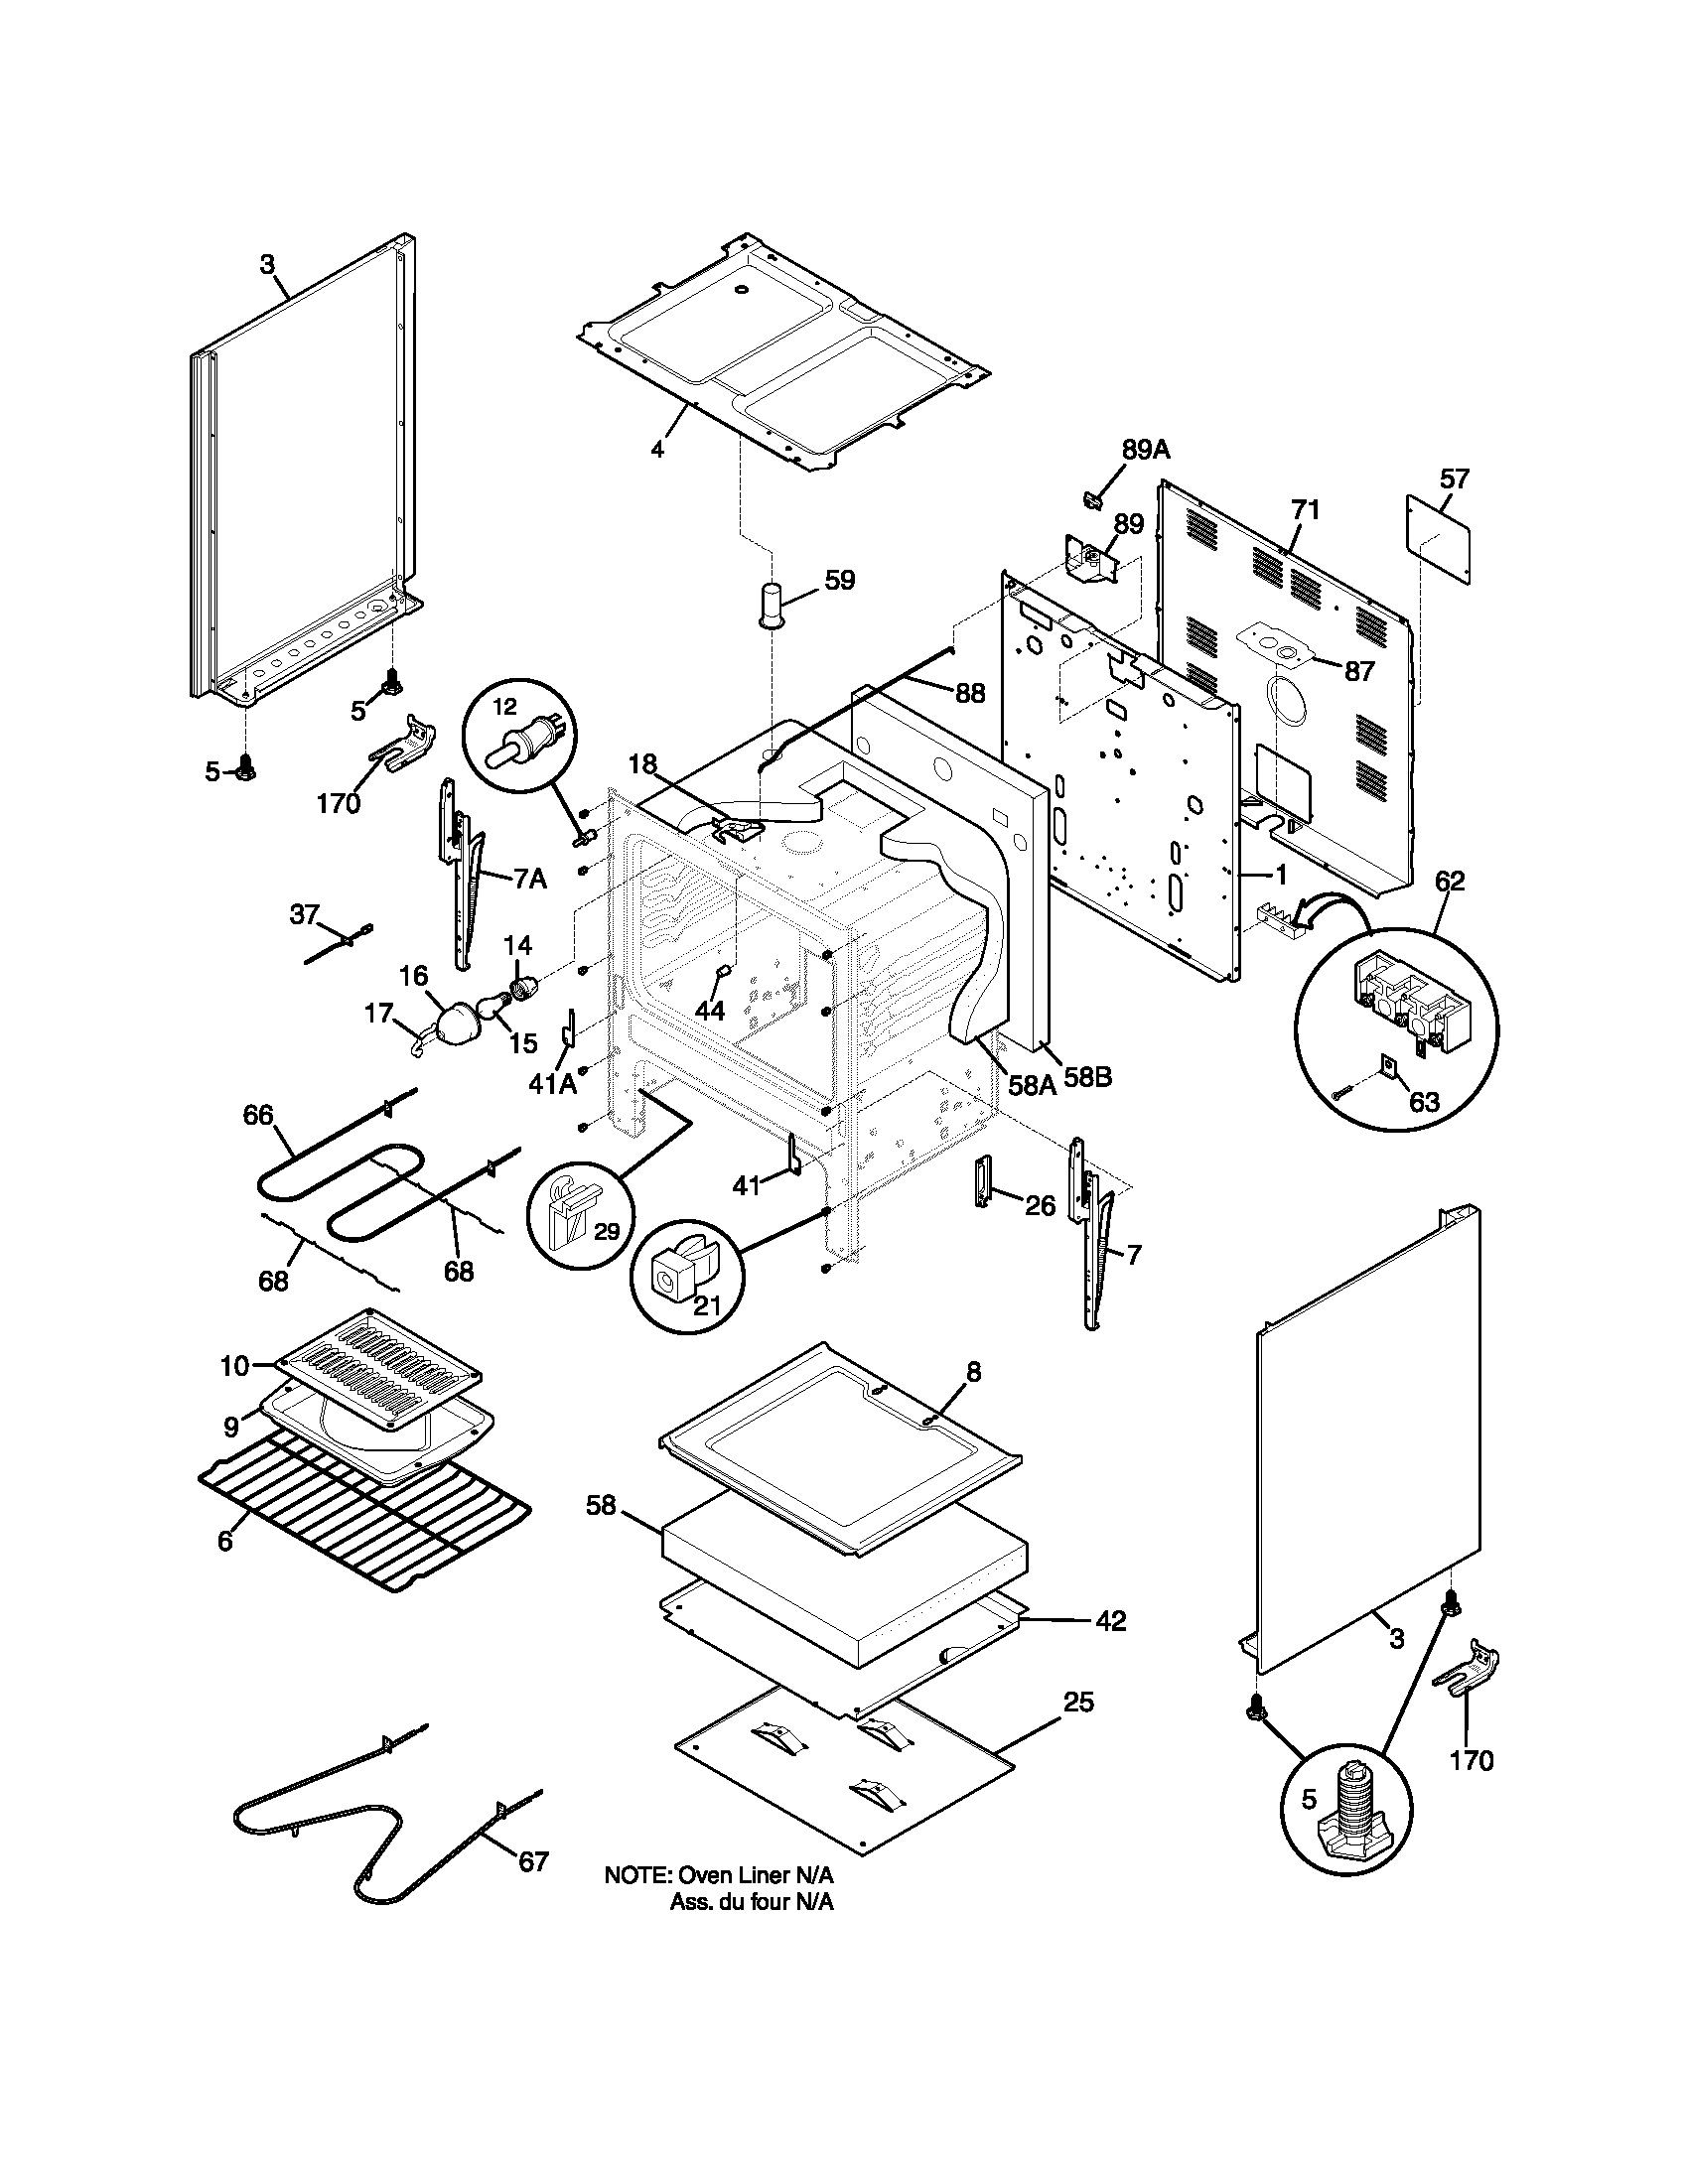 BODY Diagram & Parts List for Model fef351cwb Frigidaire